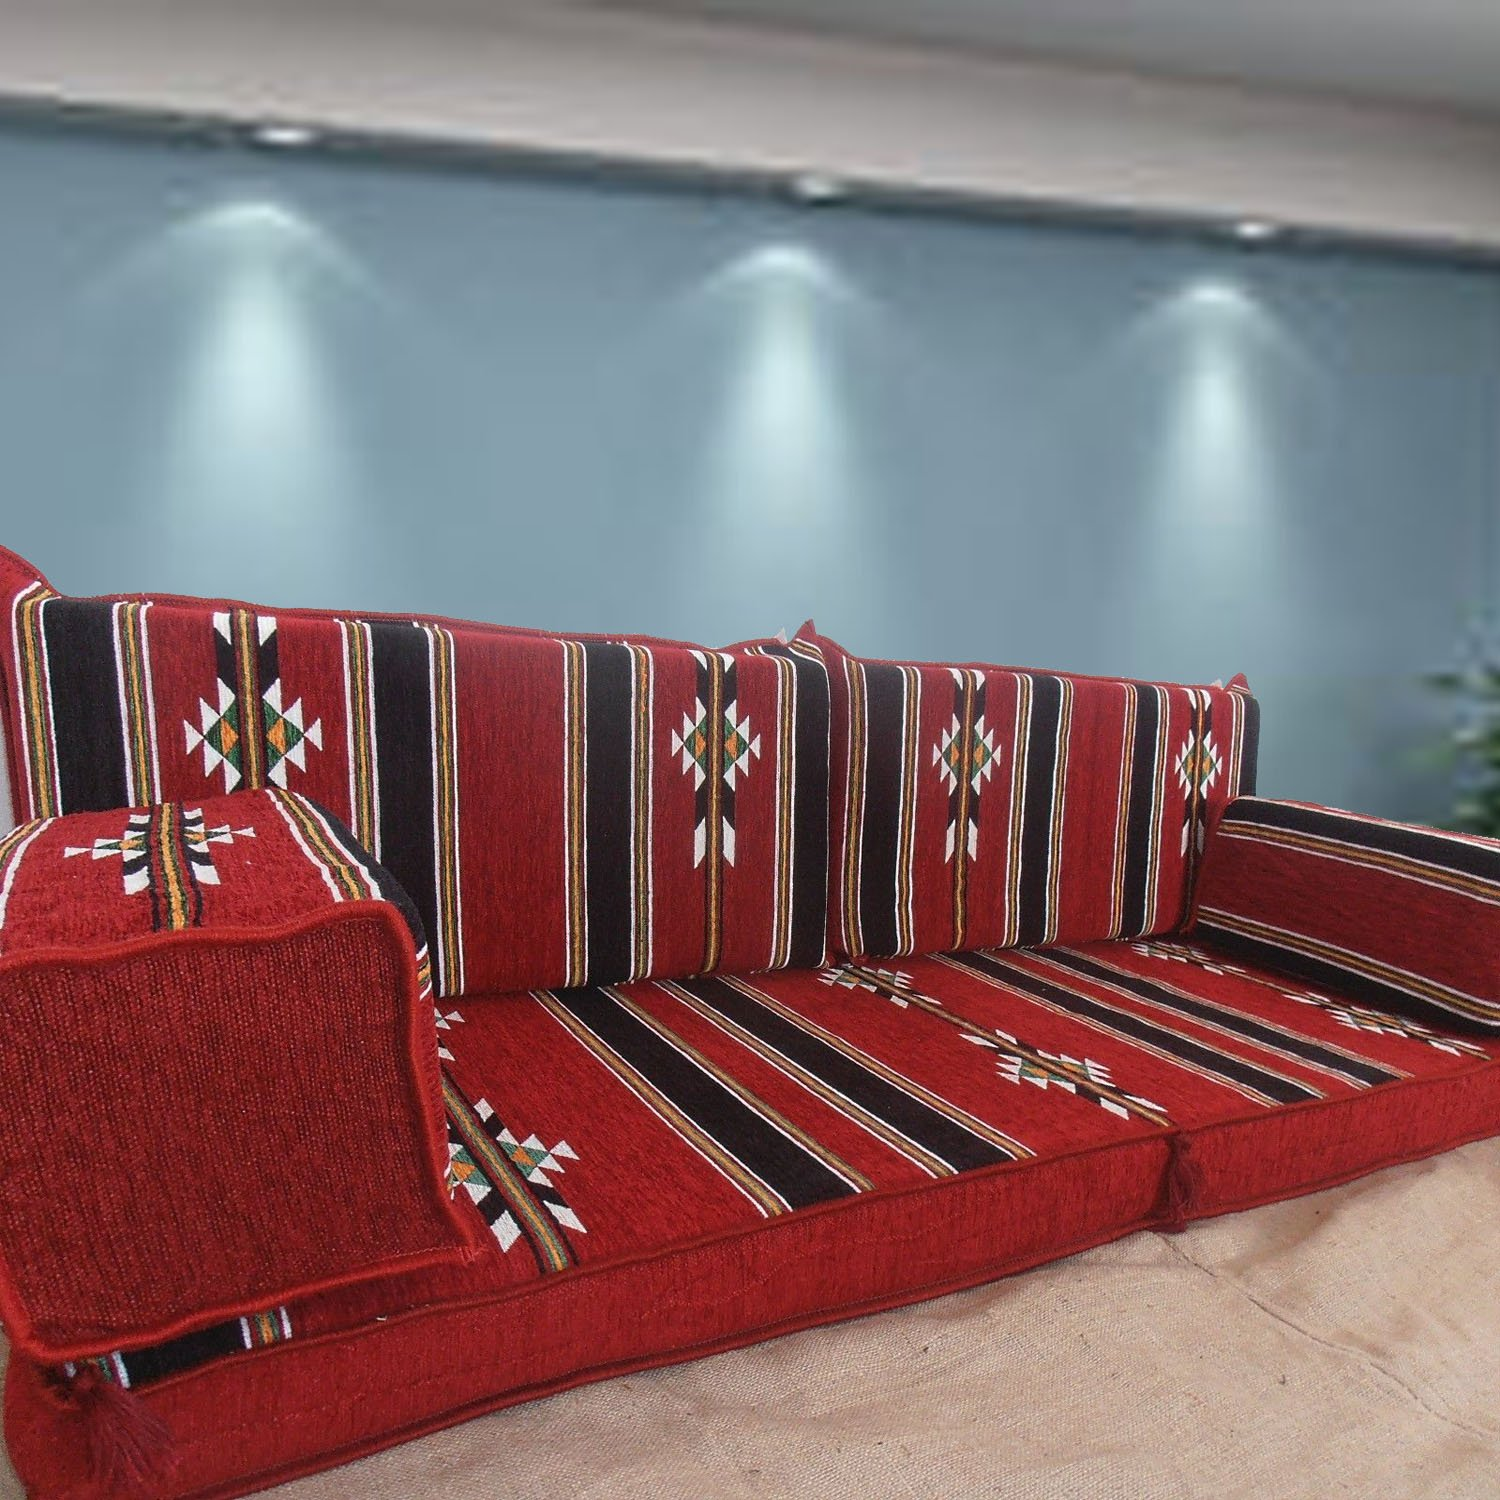 Tribal Floor Seating, Handmade Floor Sofa Set,Arabic Majlis,Arabic Jalsa,Floor Seating Couch,Floor Cushions,Oriental Floor Seating,Hookah Bar Furniture,Living Room Decoration,Kilim Sofa Set,Floor Sofa Bed by Amazon